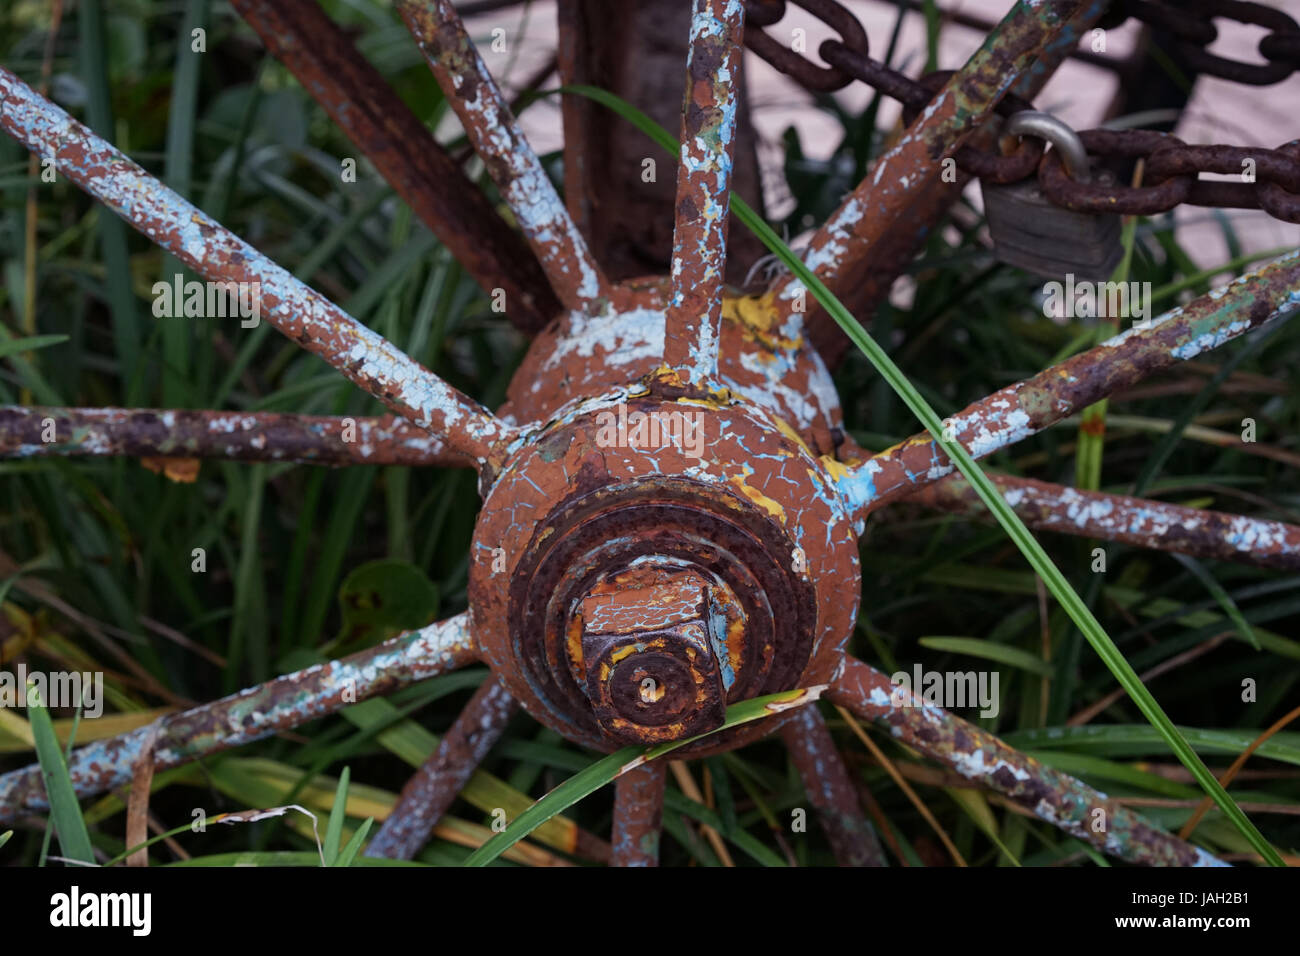 Old Weathered Wagen Wheel With Rust And Yellow Blue Spots - Stock Image